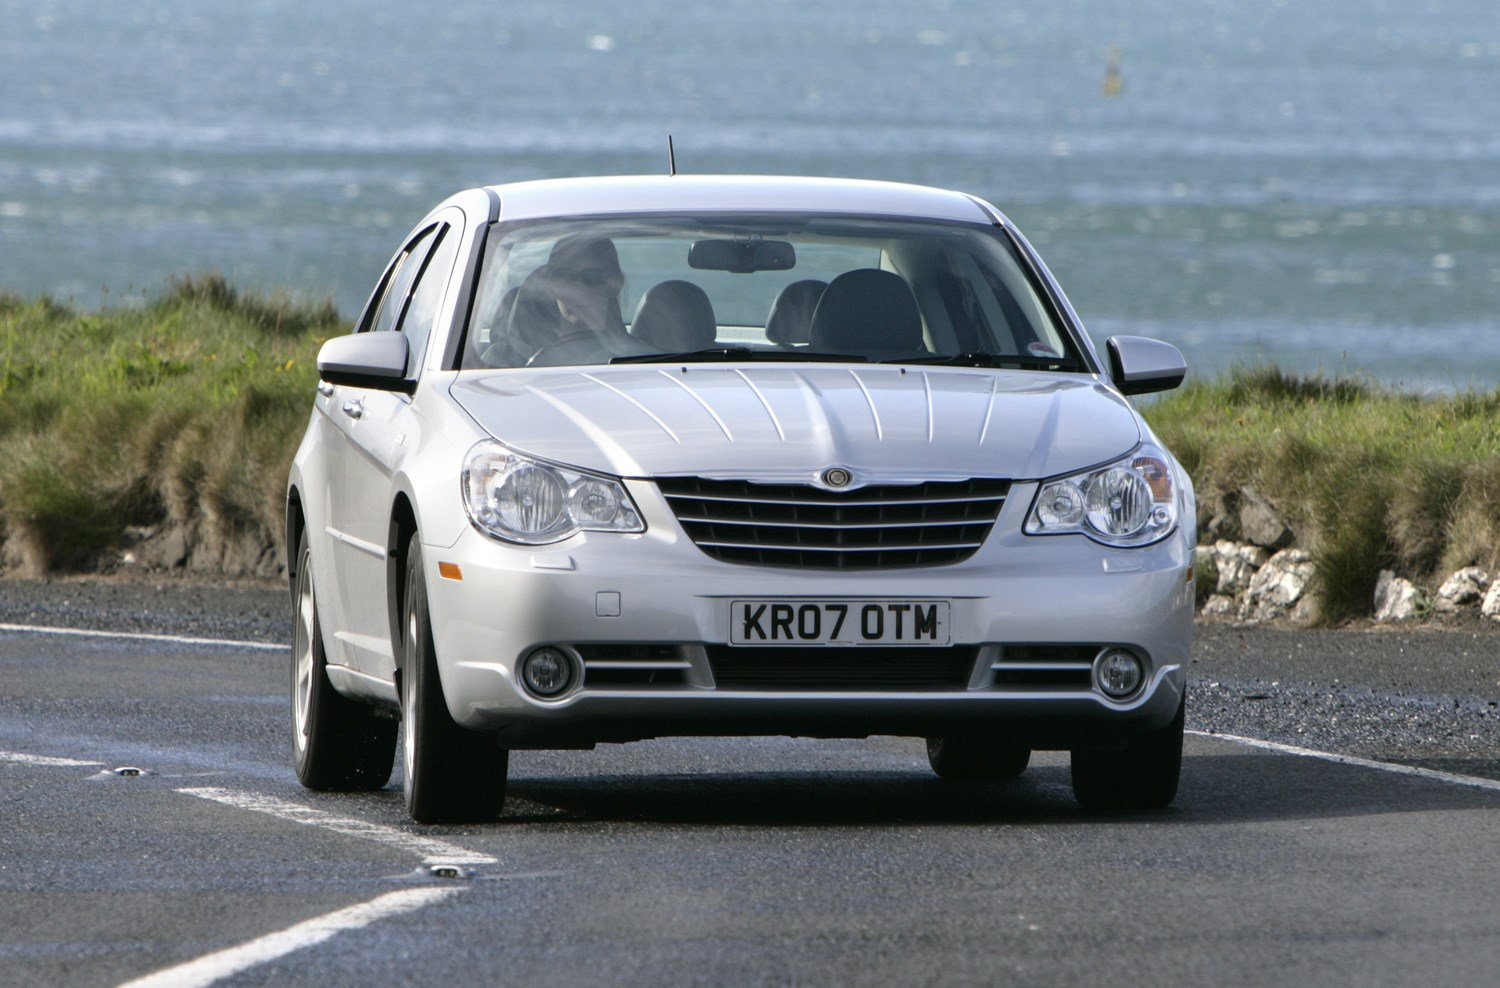 chrysler ypsilon for sale with Sebring on Chrysler Grand Voyager 3 3l Automatic 2005 further Chrysler Ypsilon 12 S 5dr Two Owners History Low Insurance Group Low Tax Petrol Manual Hatchback as well Chrysler Shows Off New Lancia Based Delta And Ypsilon Models in addition Custom Cruiser additionally Lancia Ypsilon.